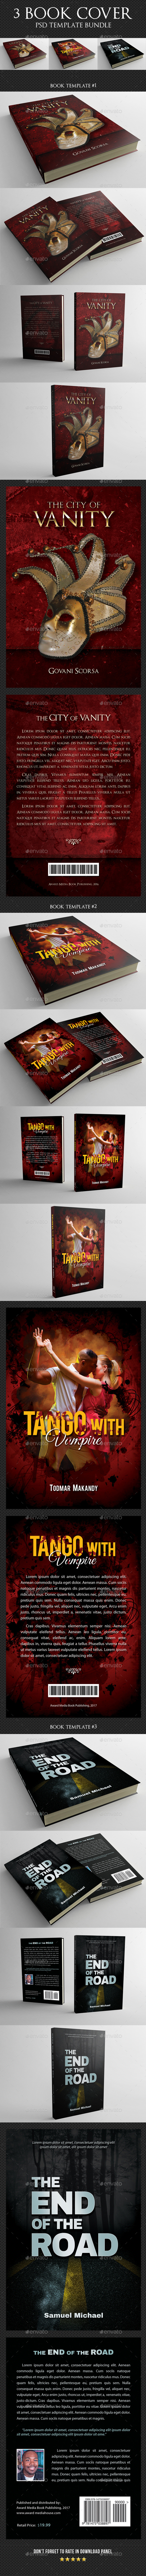 3 in 1 Book Cover Template Bundle 04 - Miscellaneous Print Templates